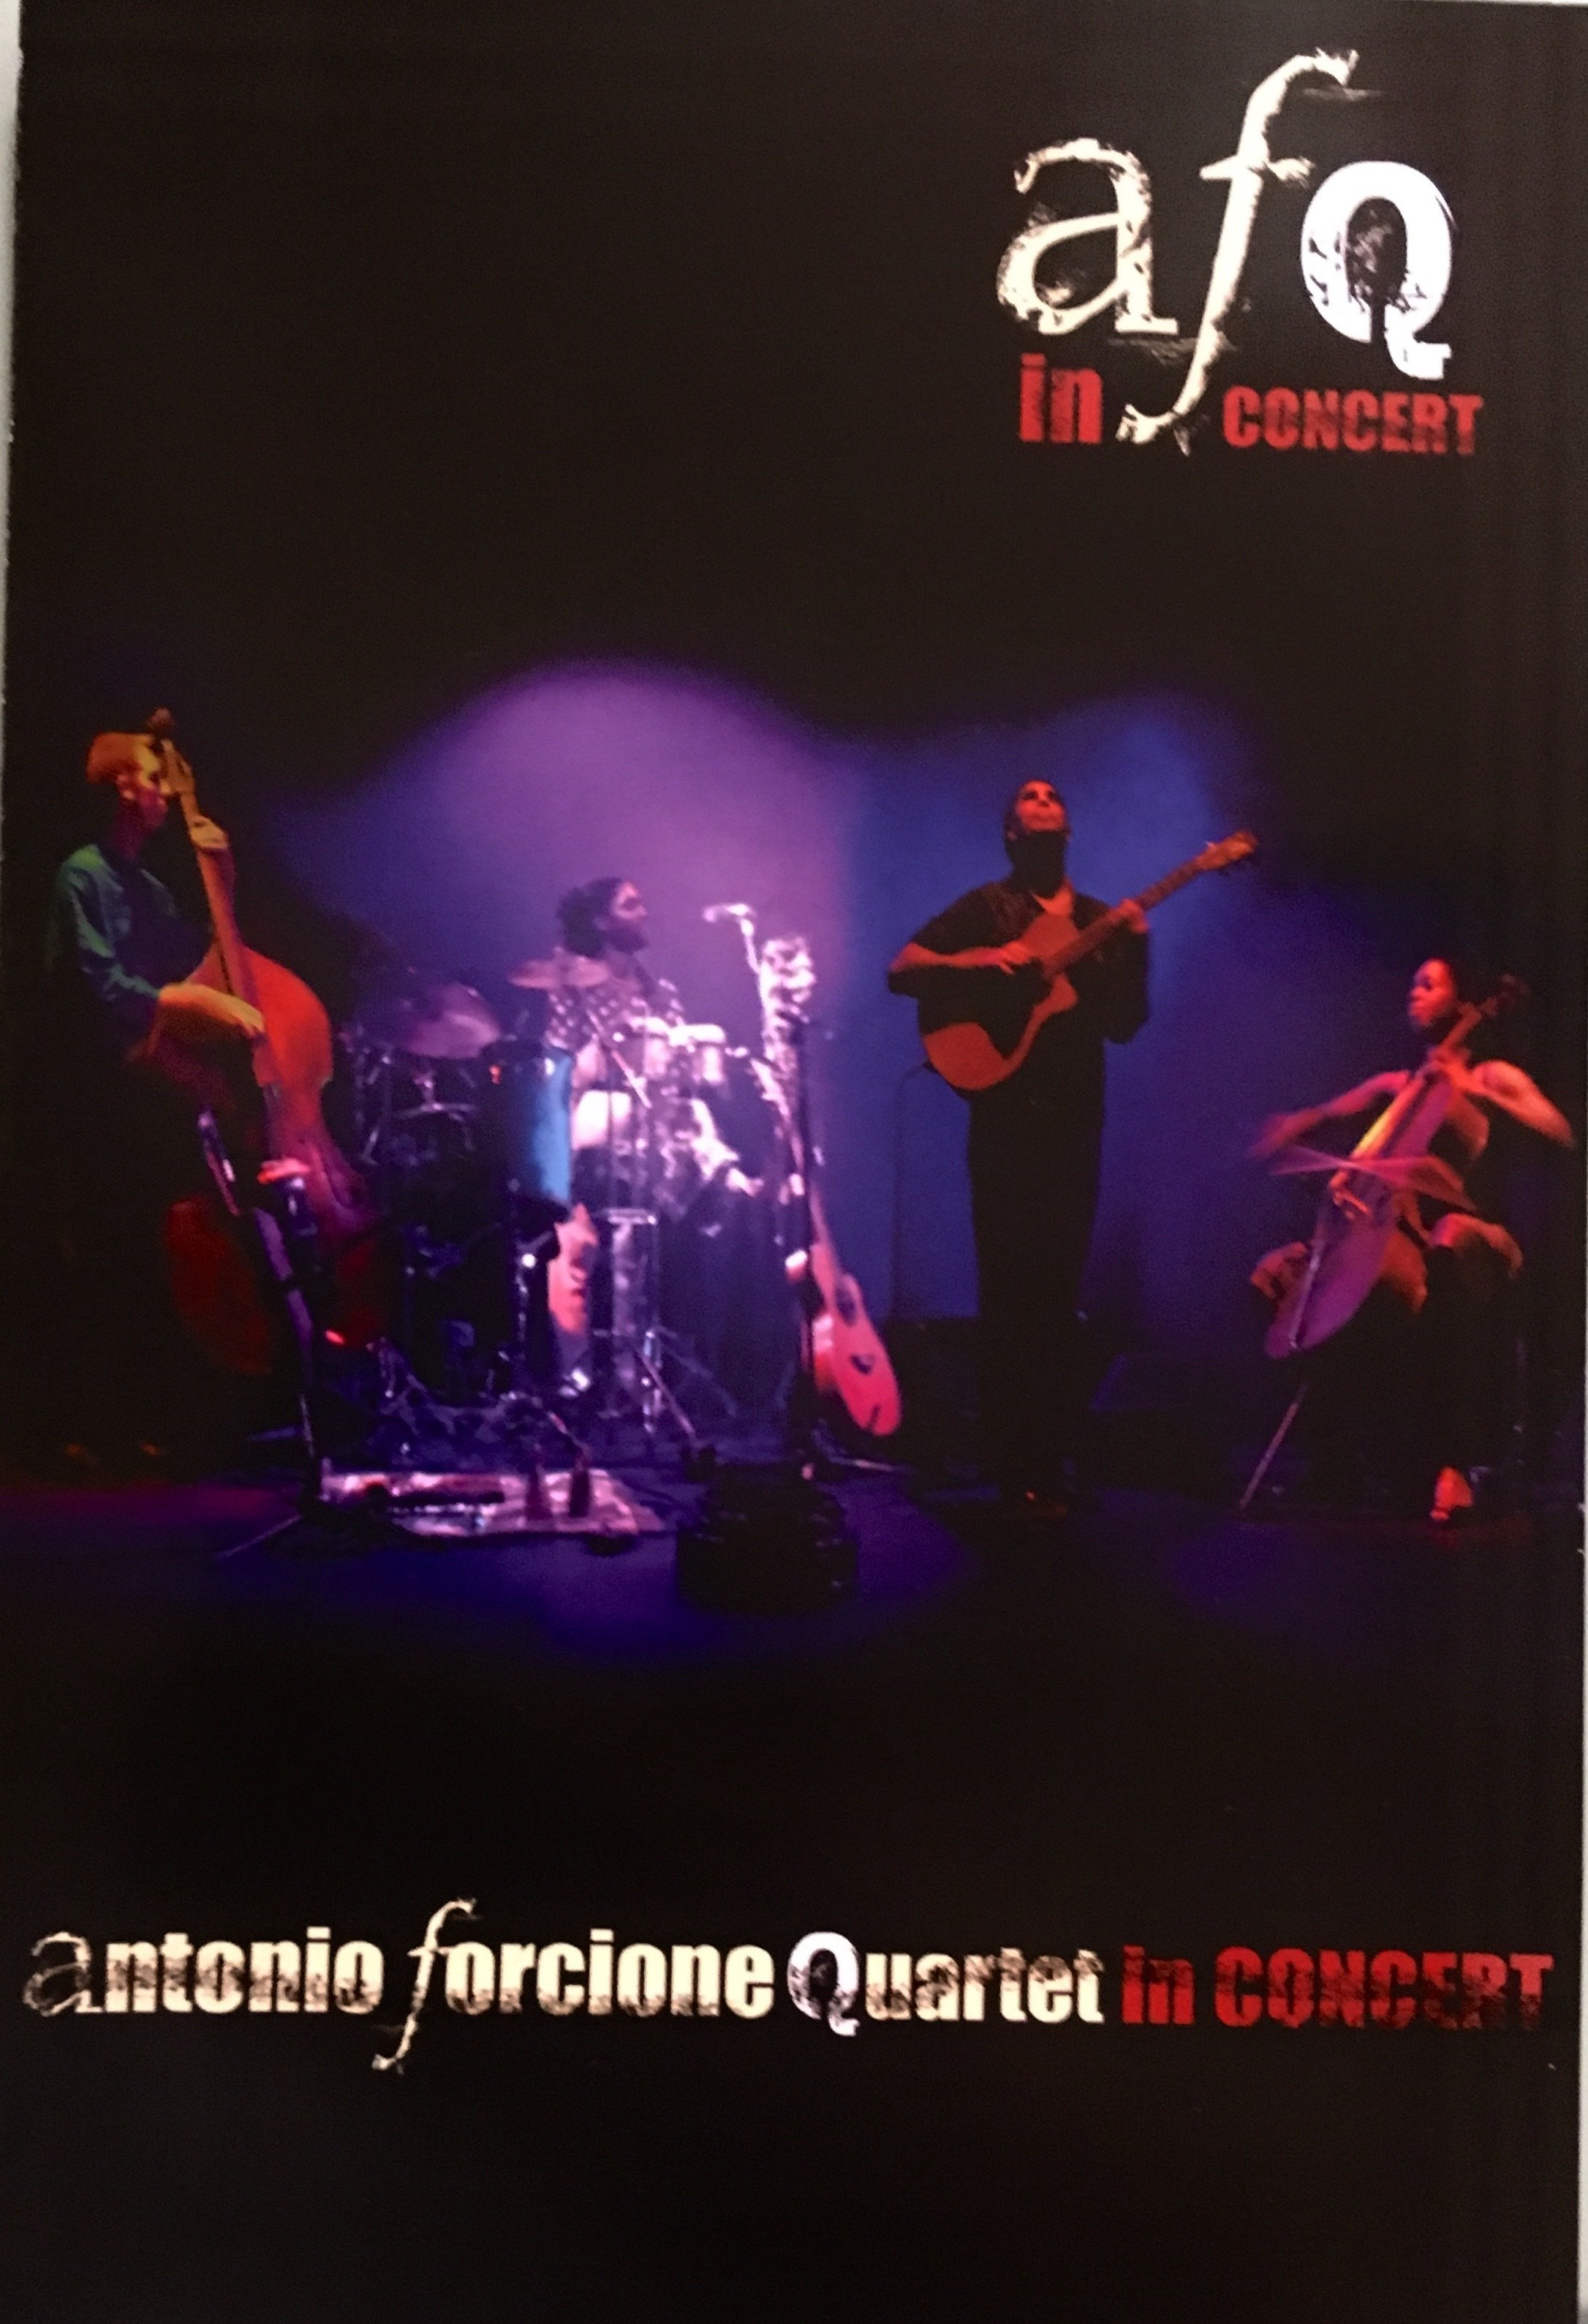 Antonio Forcione. Quartet in Concert DVD NAIMDVD100